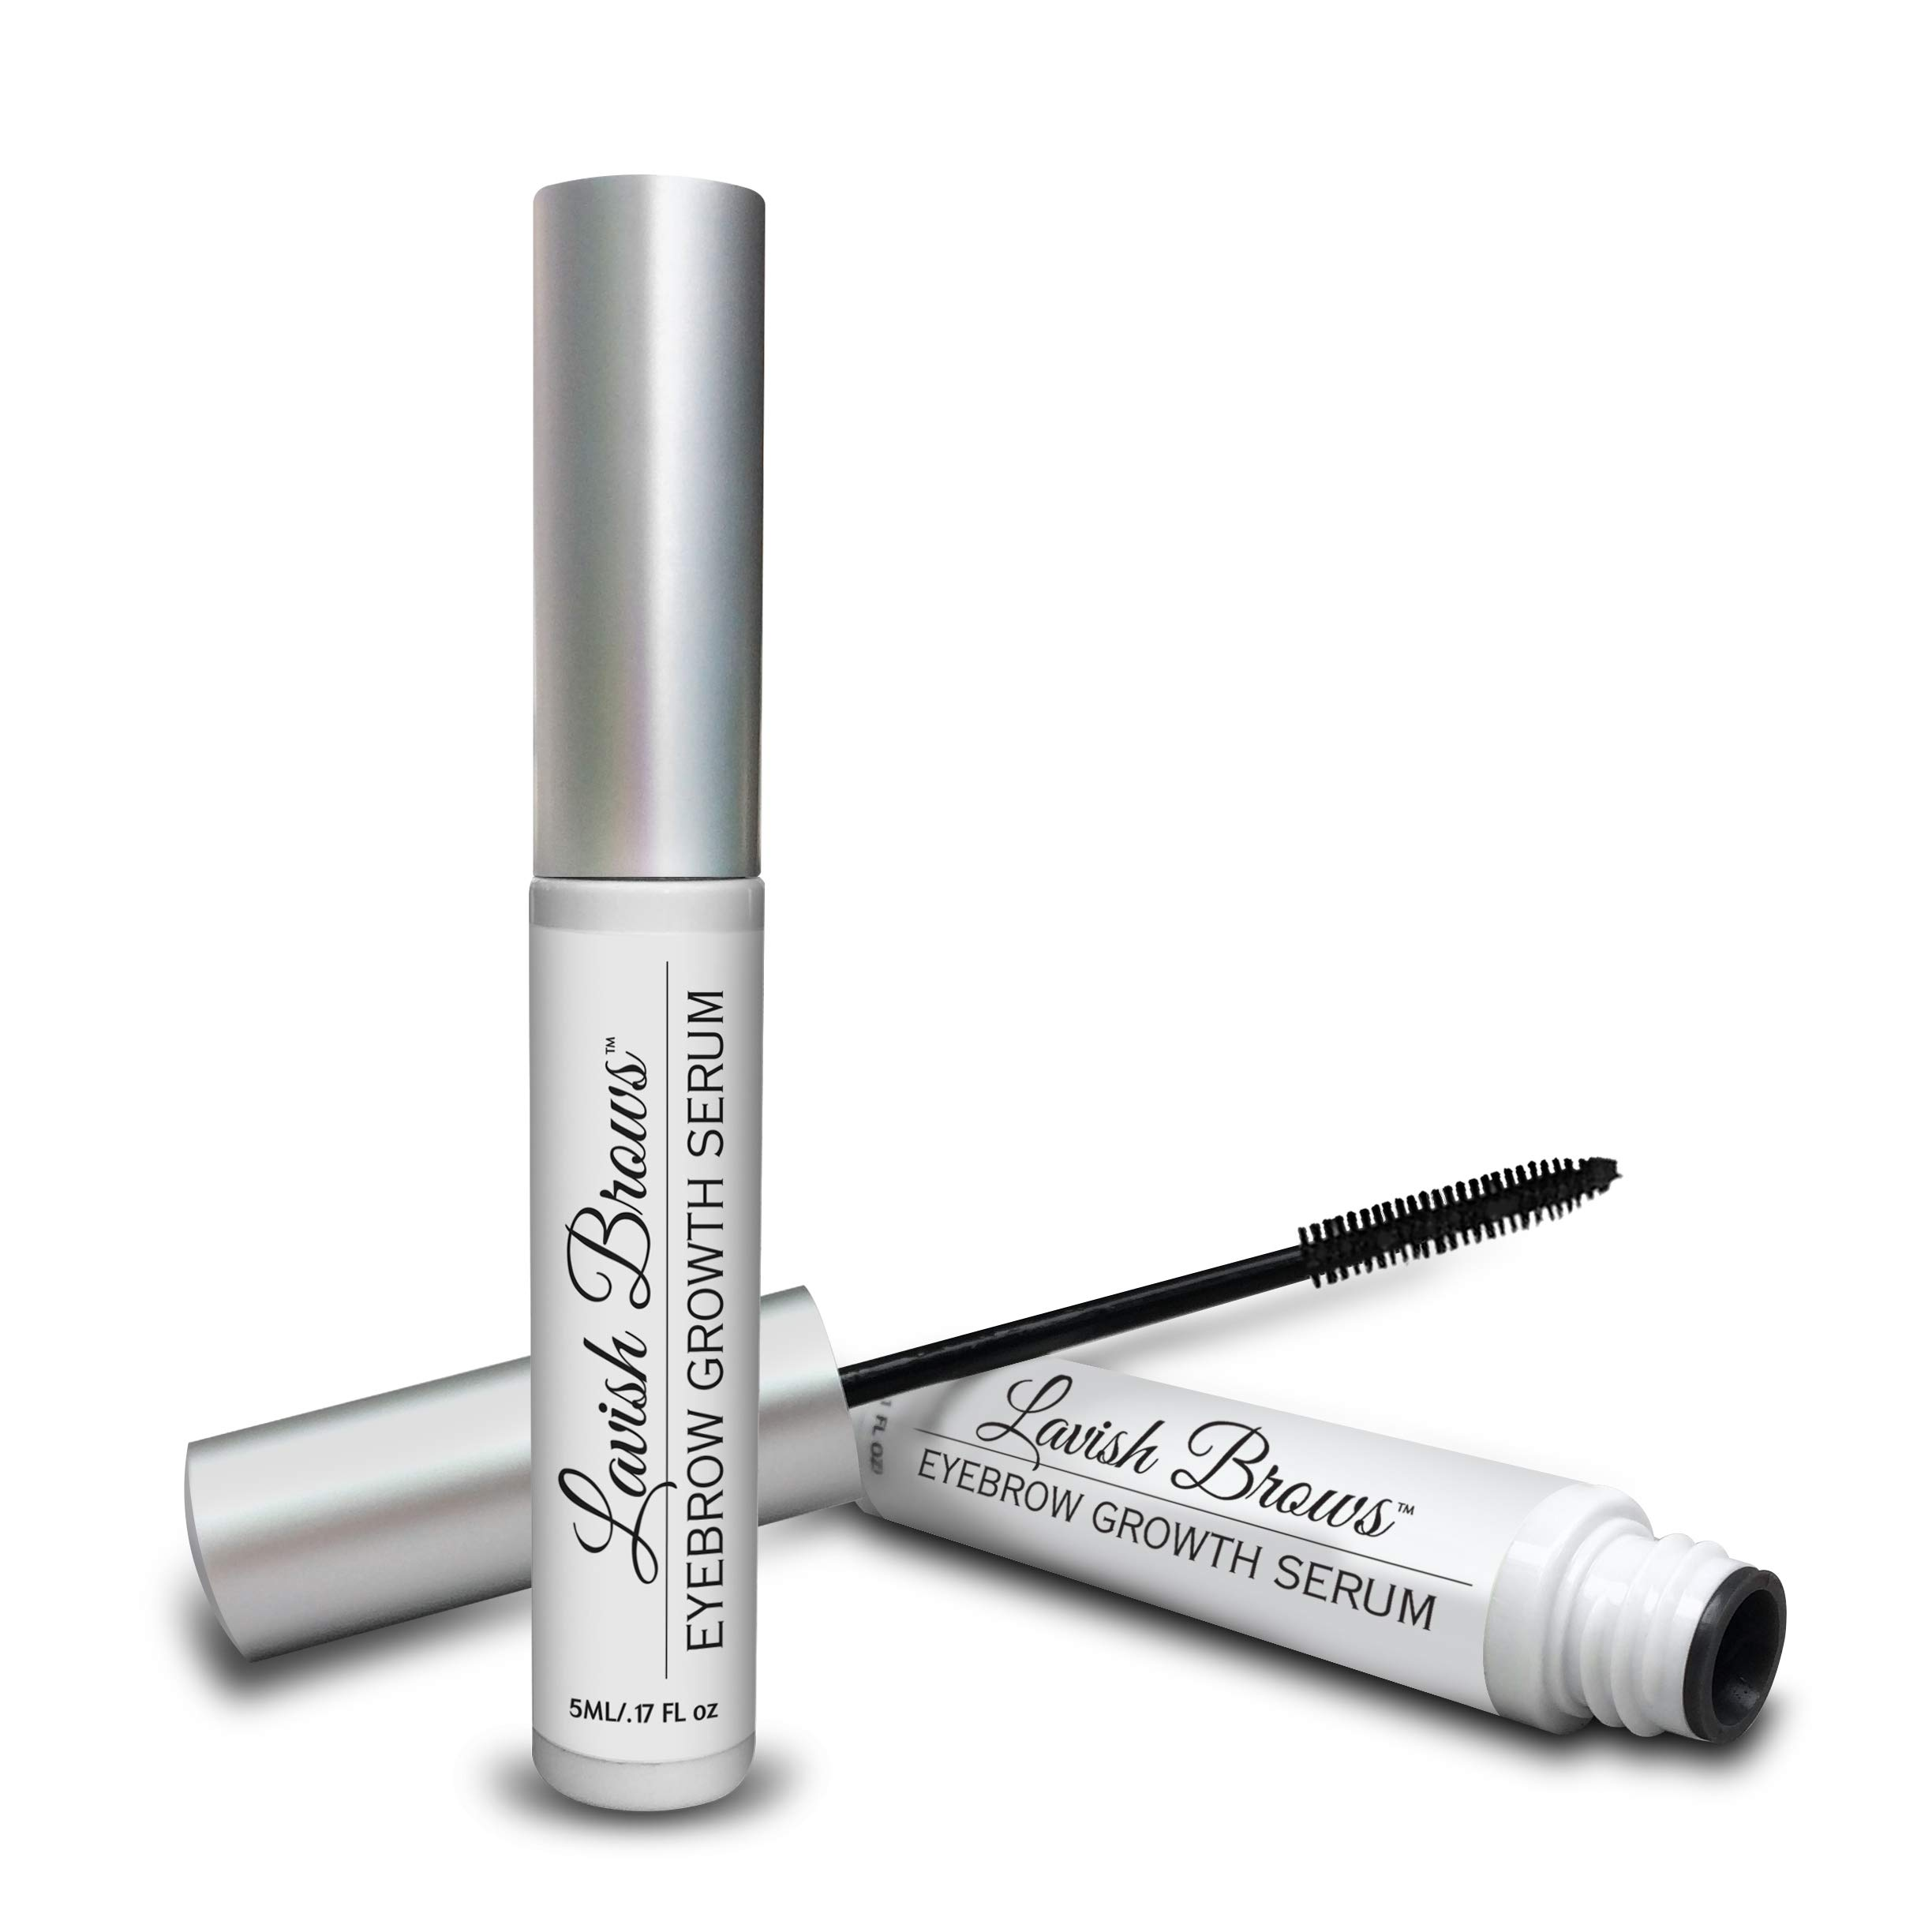 Pronexa Hairgenics Lavish Brows - Eyebrow Growth Enhancer Serum with Biotin, Castor Oil & Natural Growth Peptides for Long, Thick Looking Eyebrows! Dermatologist Certified & Hypoallergenic. by Pronexa